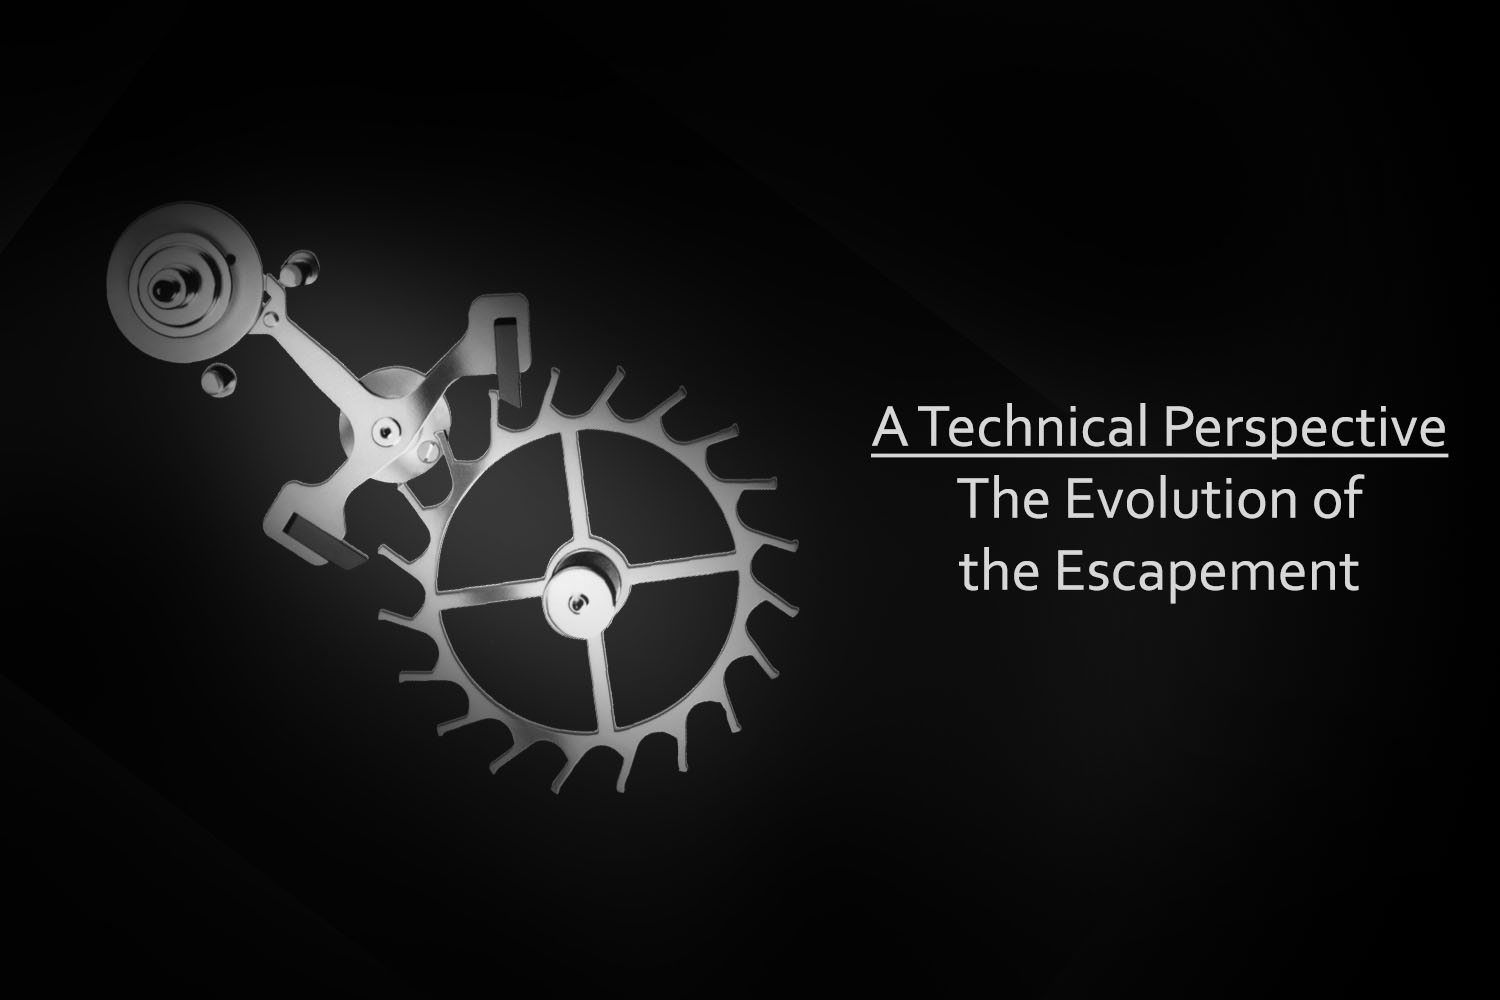 A Technical Perspective - The Evolution of the Escapement and recent innovations